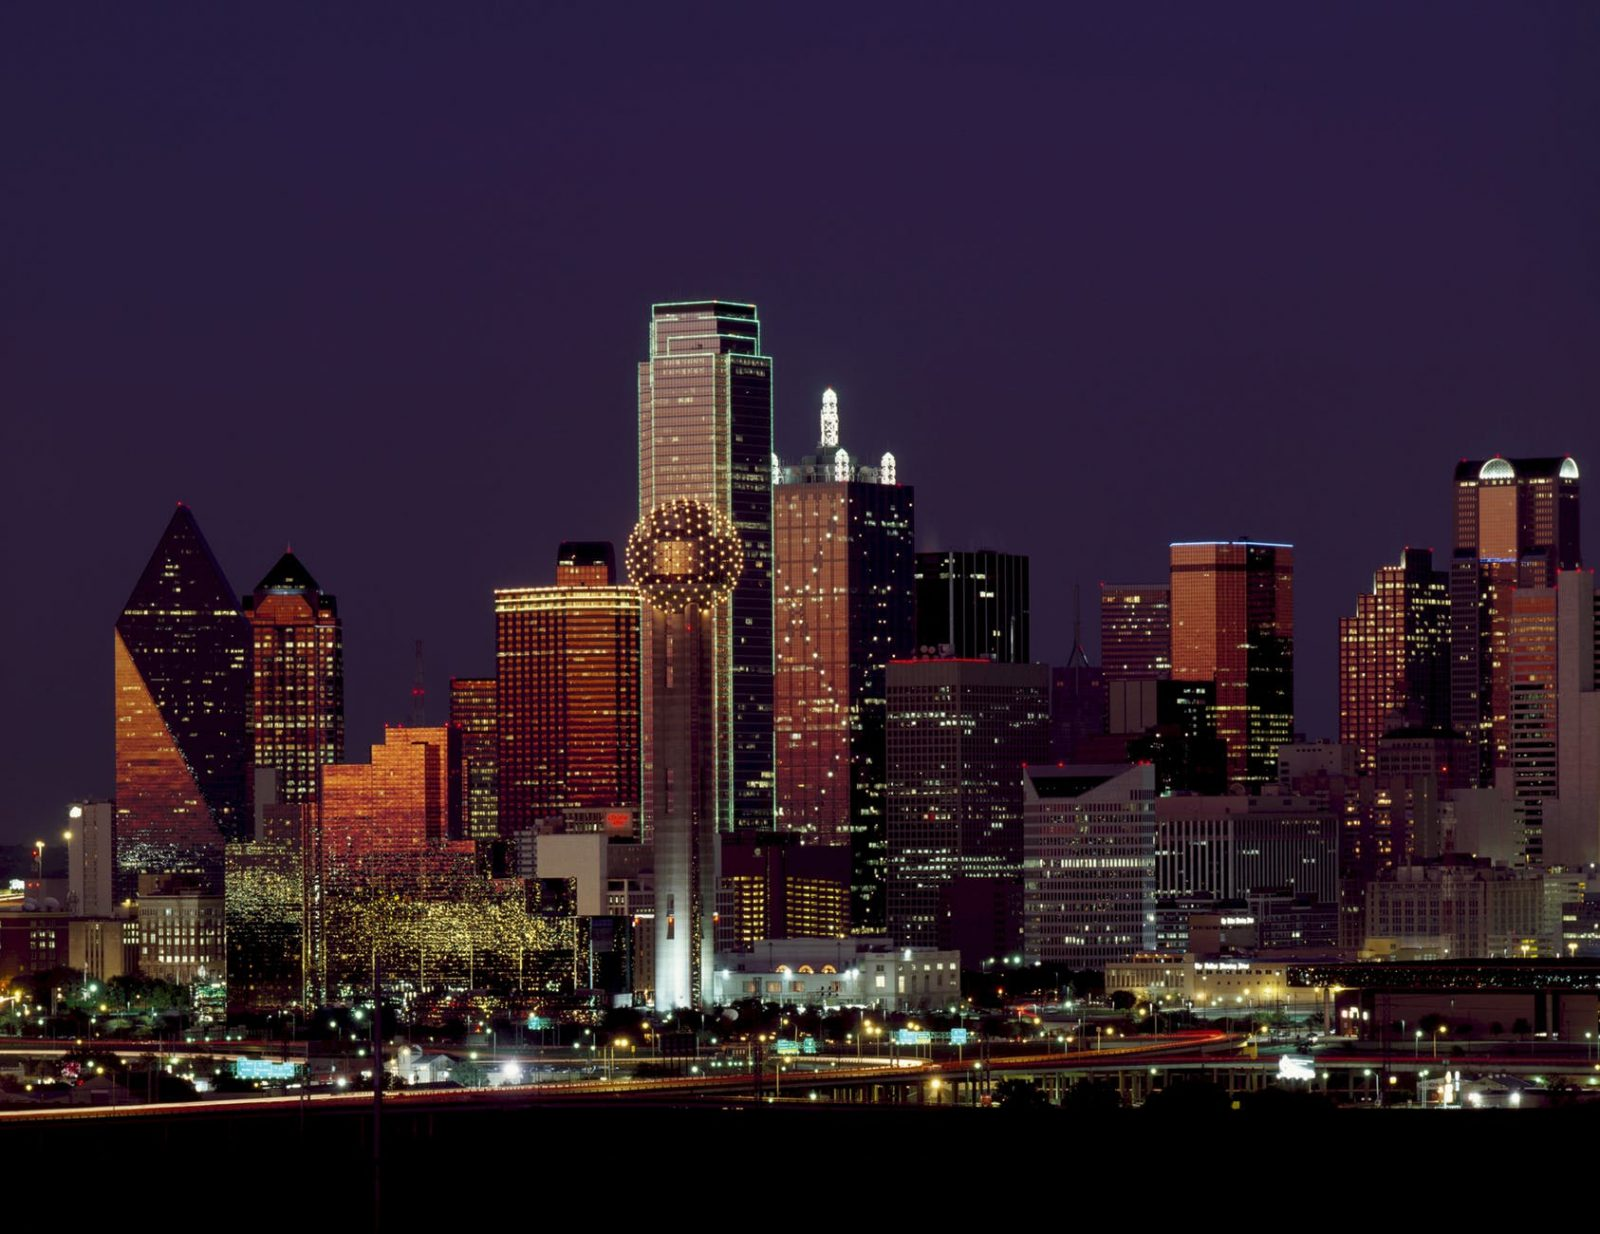 Flight Deal Round Trip From New York Area to Dallas Area #newyork #dallas #1week